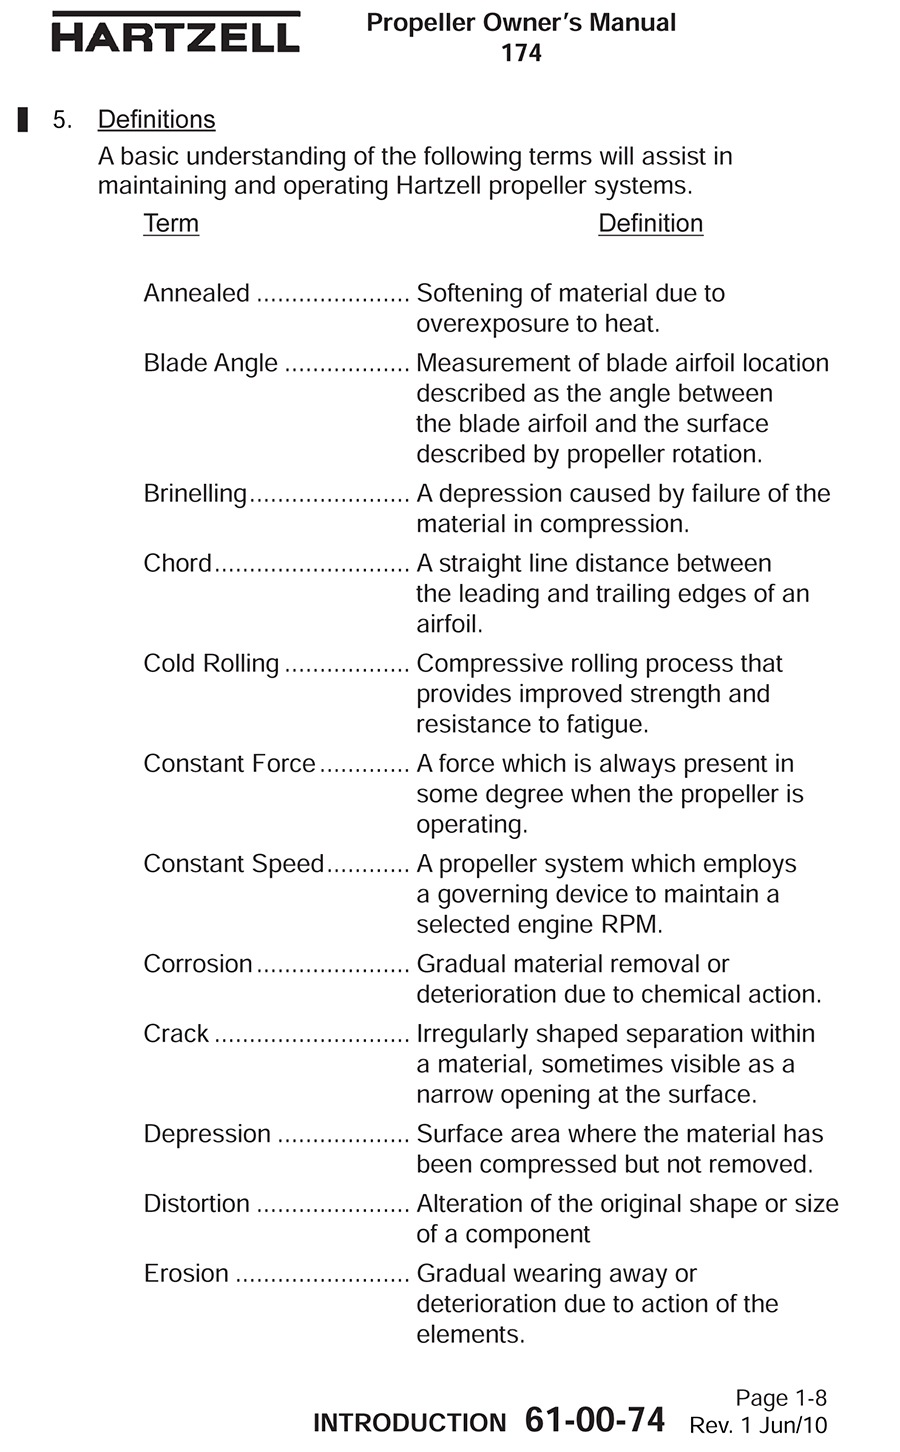 Hartzell Prop Manual 2010 page34